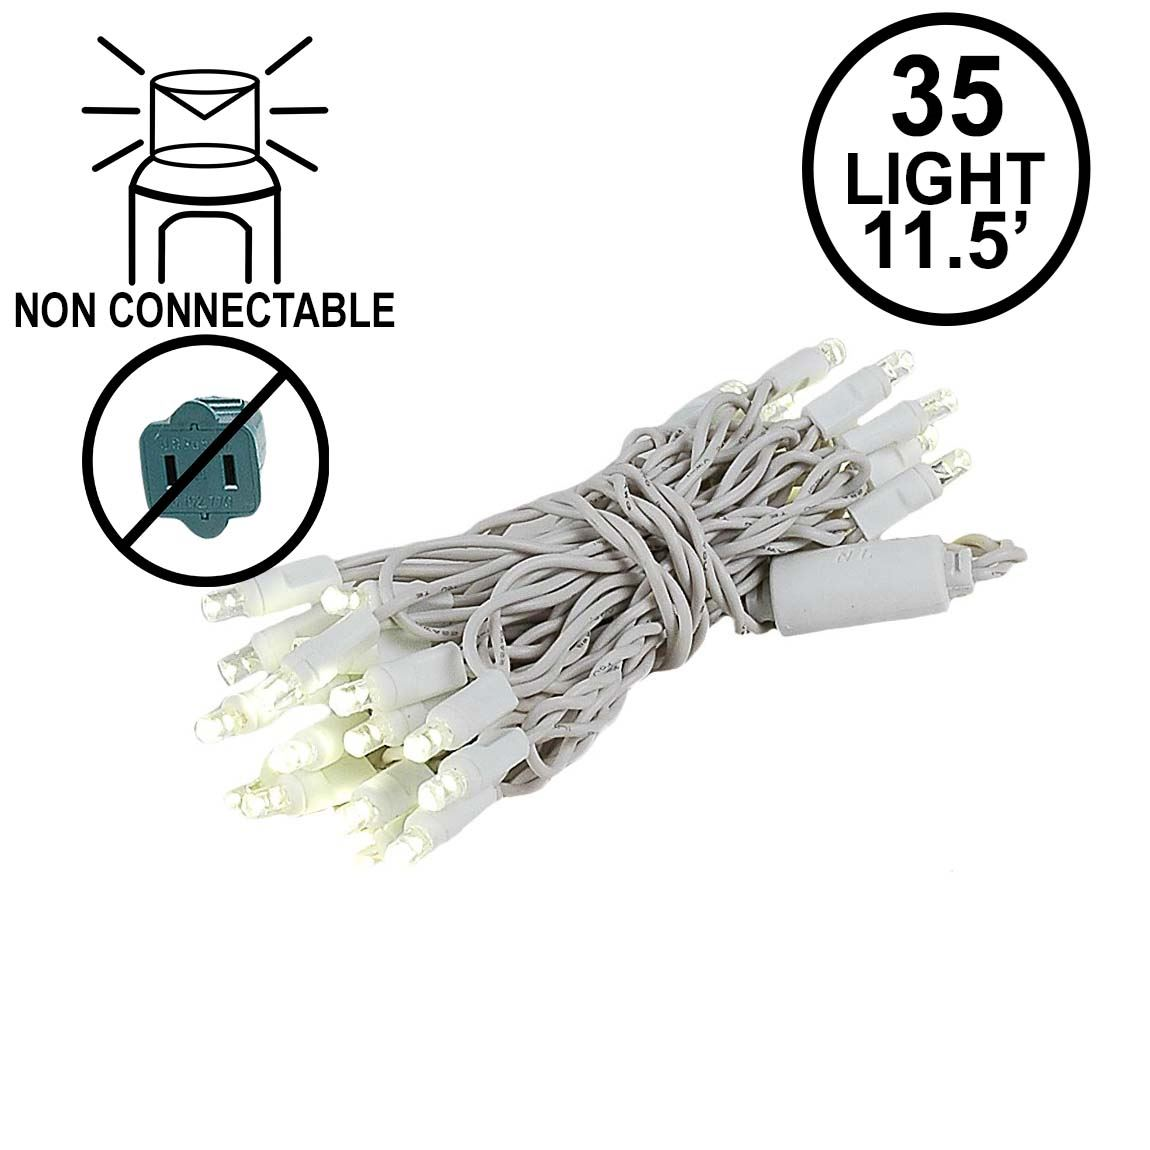 35 Light Warm White LED Christmas Light Set Non-Connectable White ...